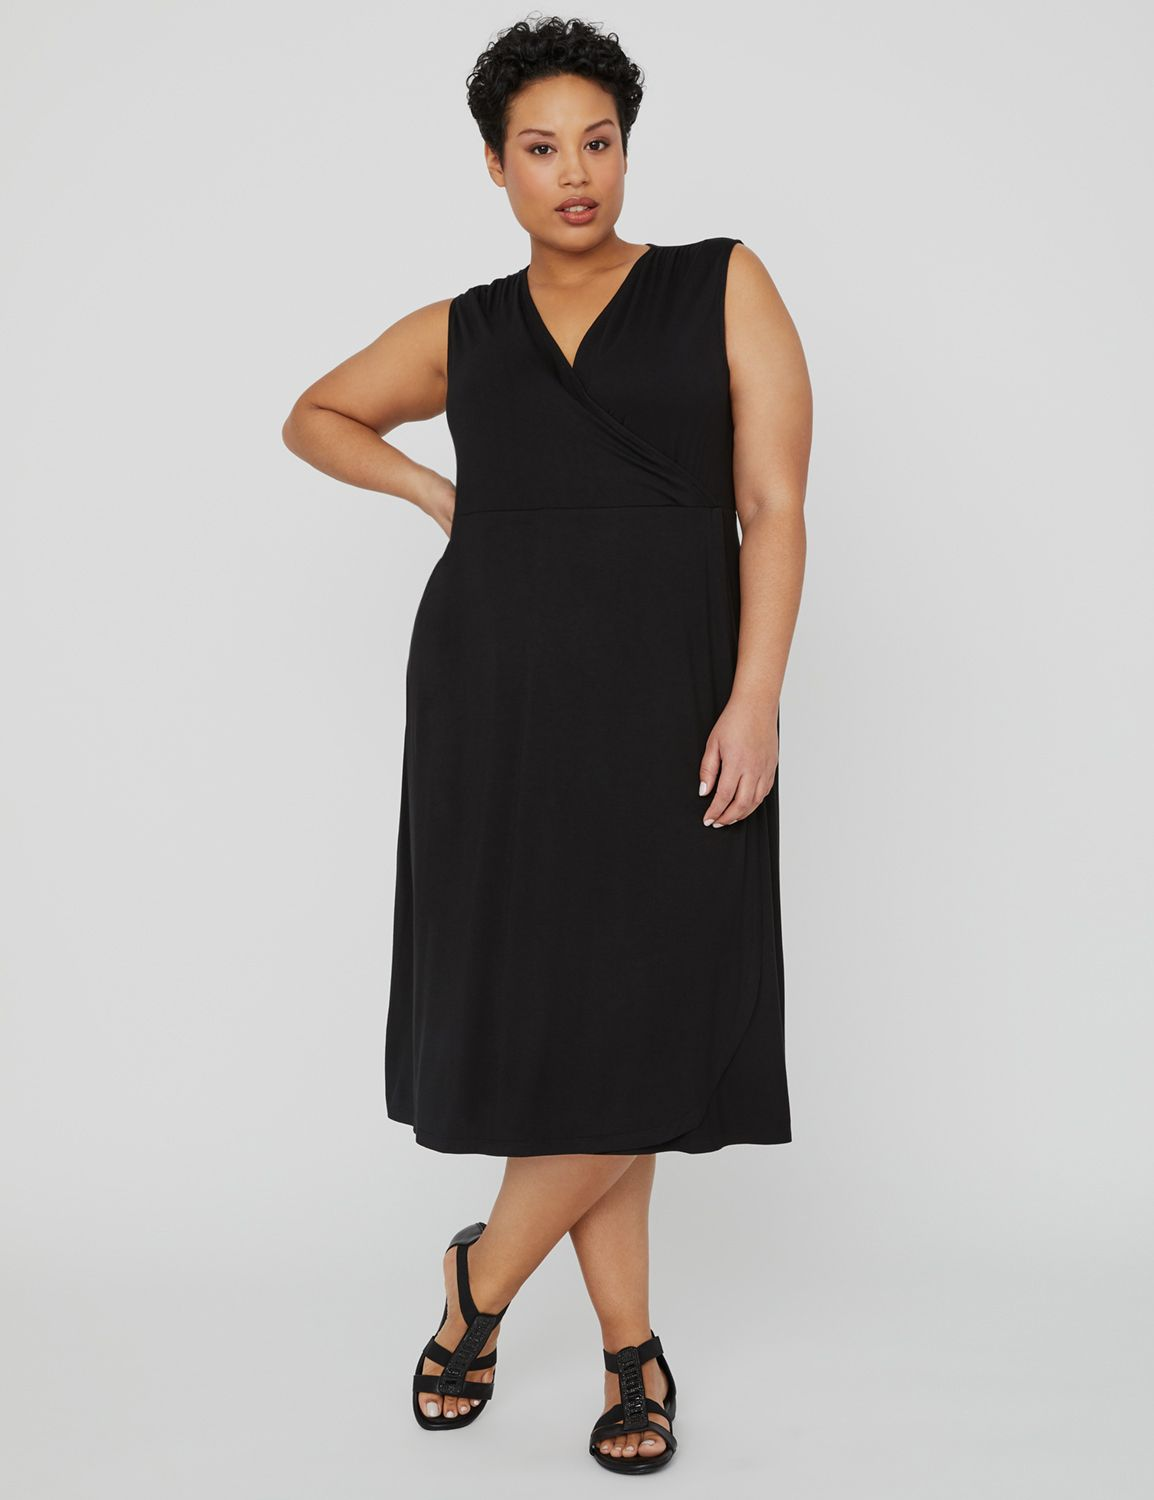 Riverview Wrap Dress 1088151 Vneck Front and Back Maxi E MP-300102450